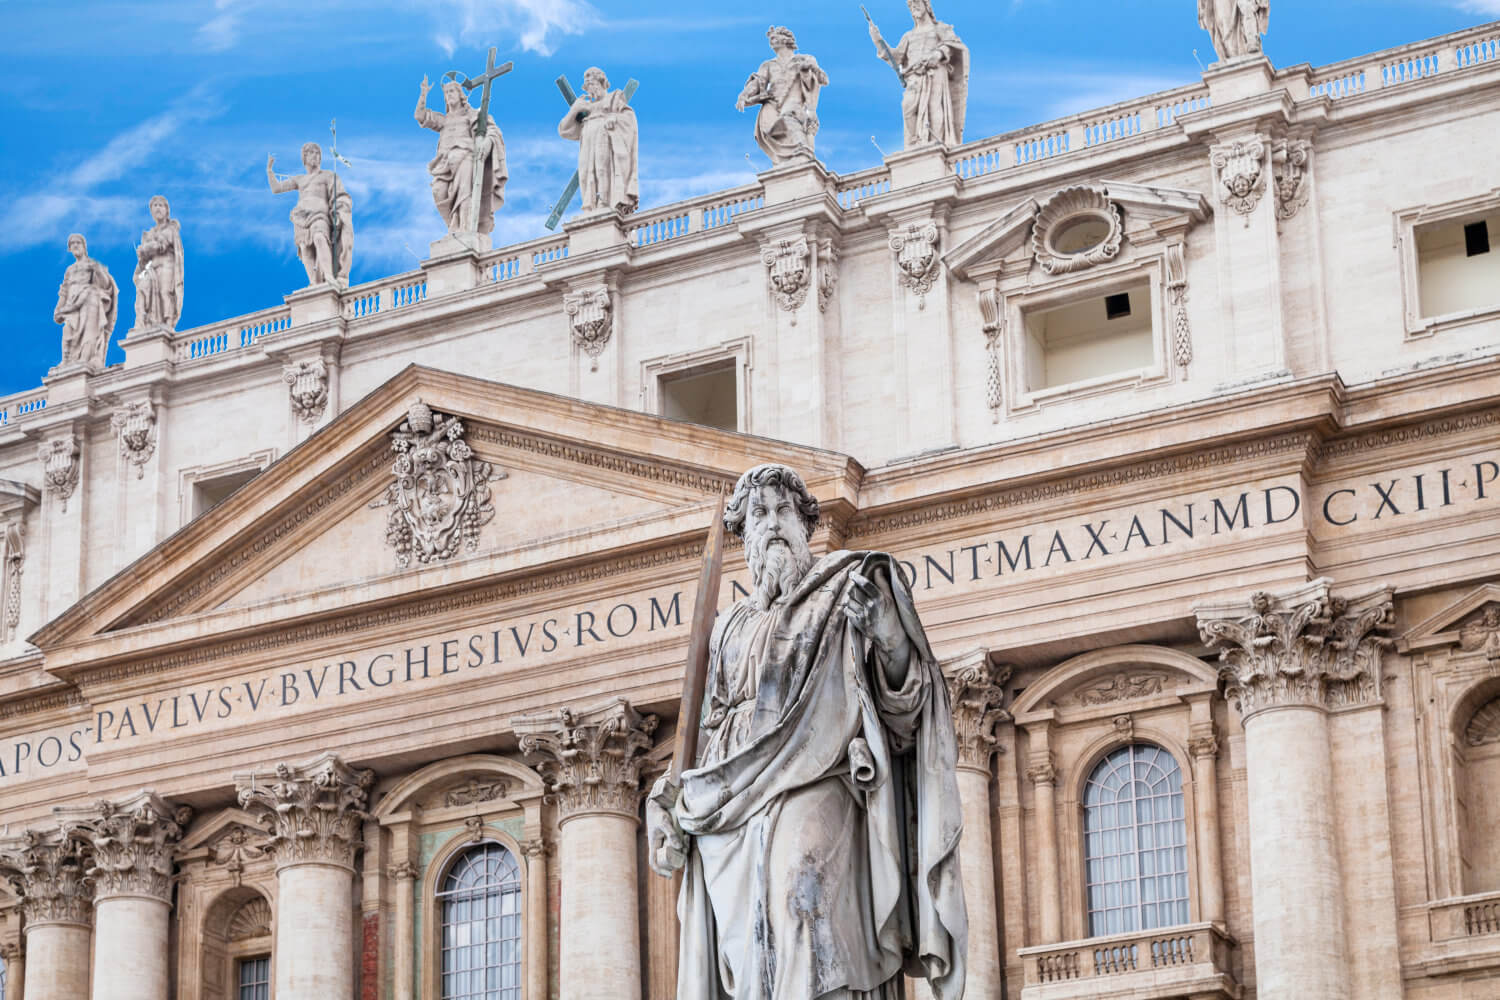 Statue of Paul the Apostle in front of St Peter's Basilica on Piazza San Pietro, in Vatican City